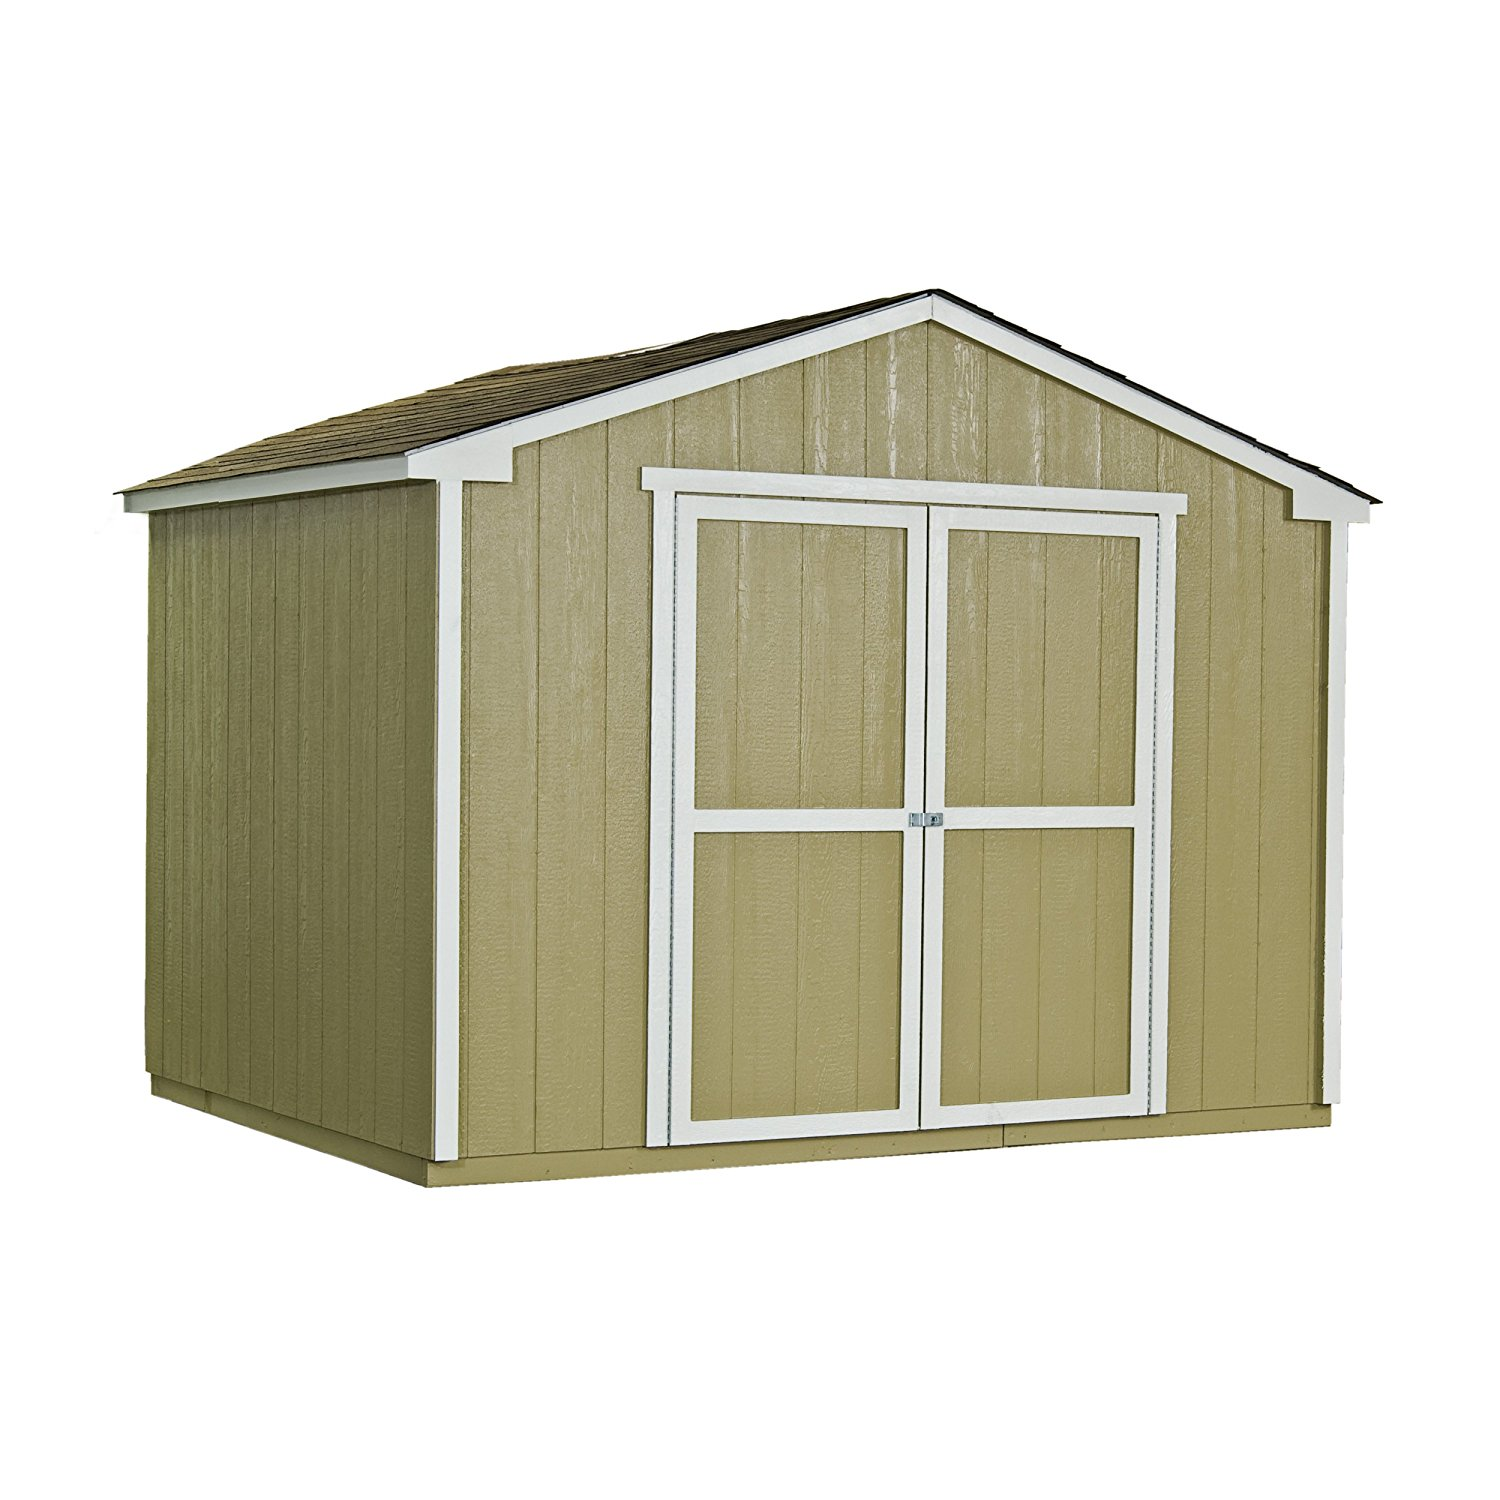 Handy Home Products 10 x 8' Wood Shed